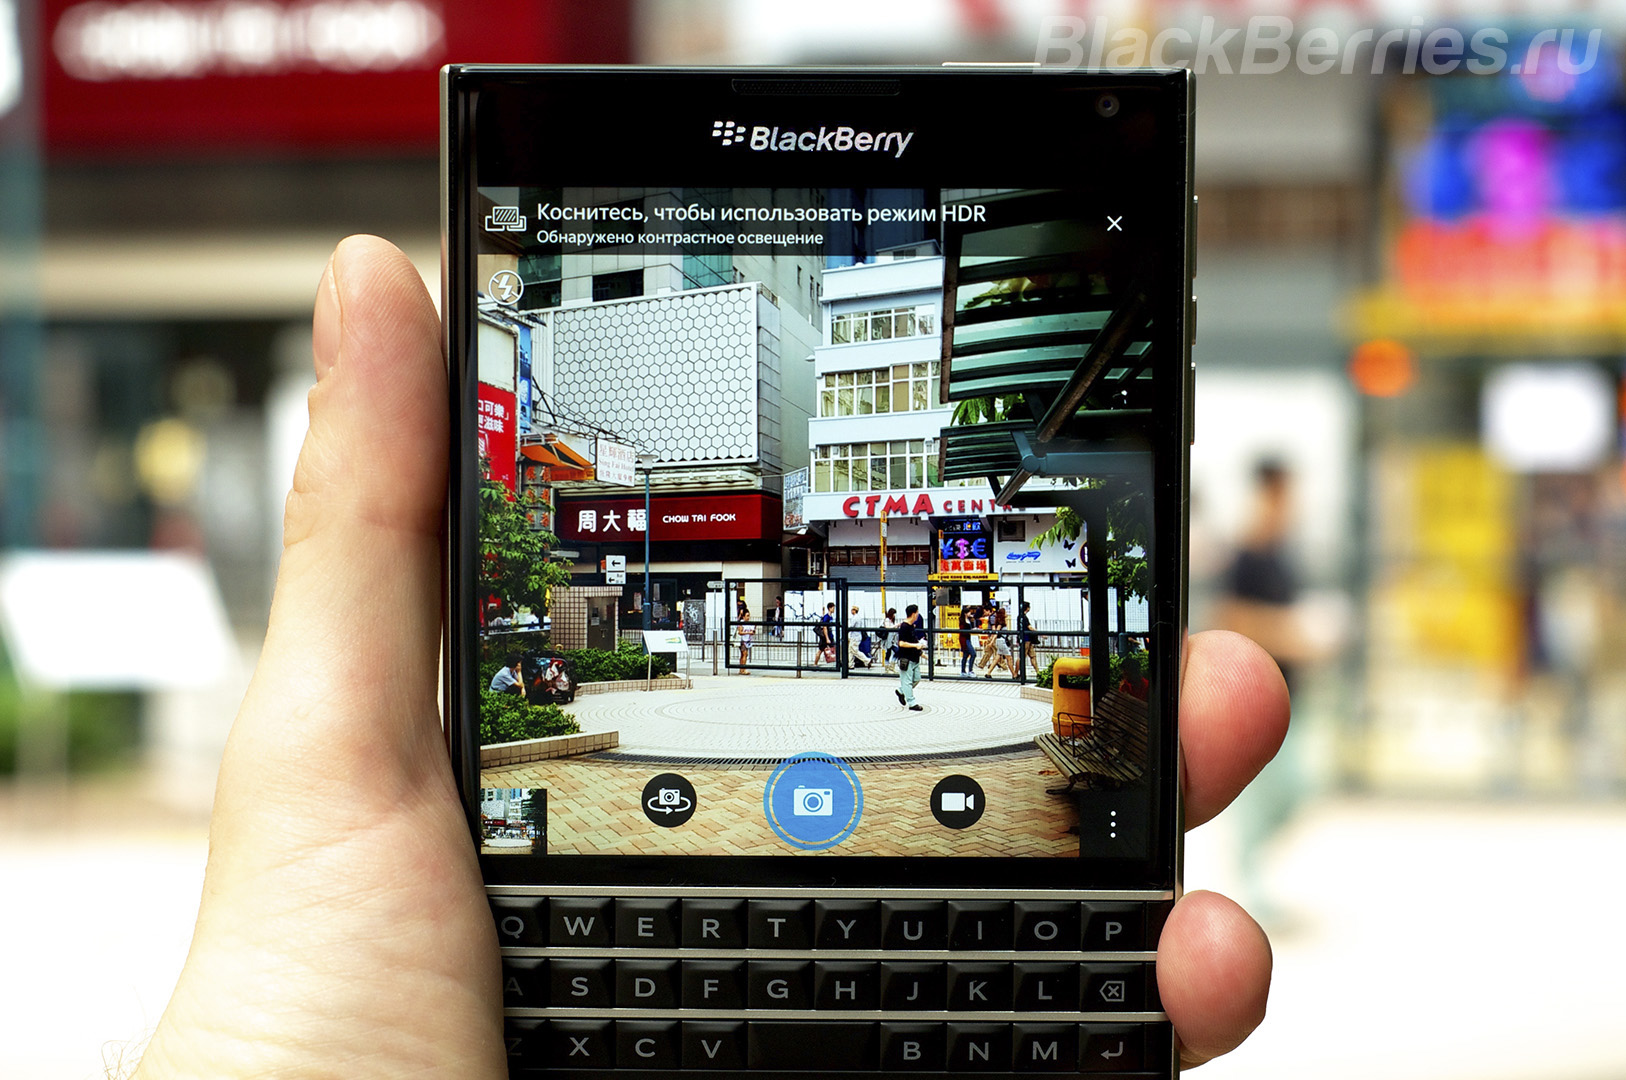 BlackBerry-Passport-Review-2014-19